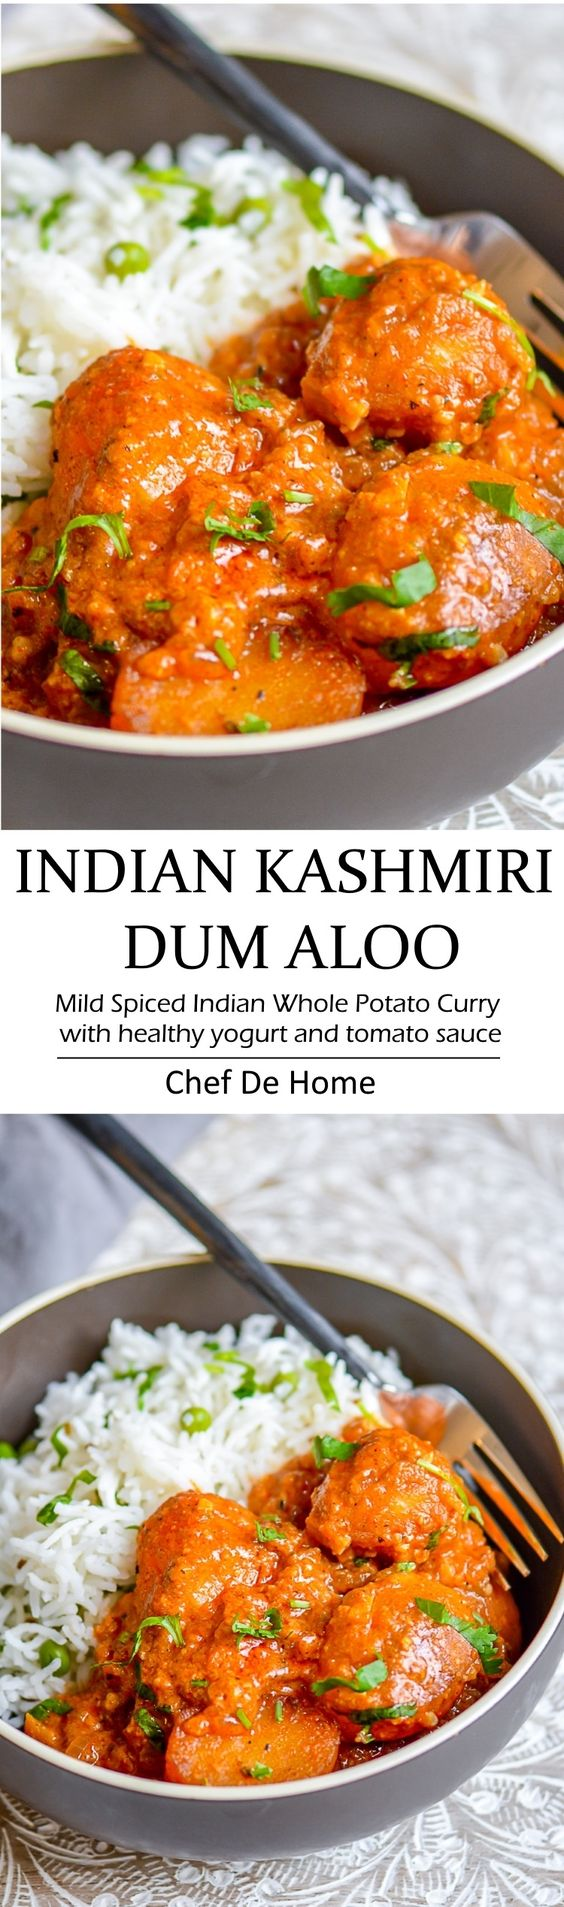 Delicious Indian dinner with easy potato curry called Kashmiri Dum Aloo - a yogurt base and lite spices make scrumptious base and served with lite rice and green peas pilaf | chefdehome.com